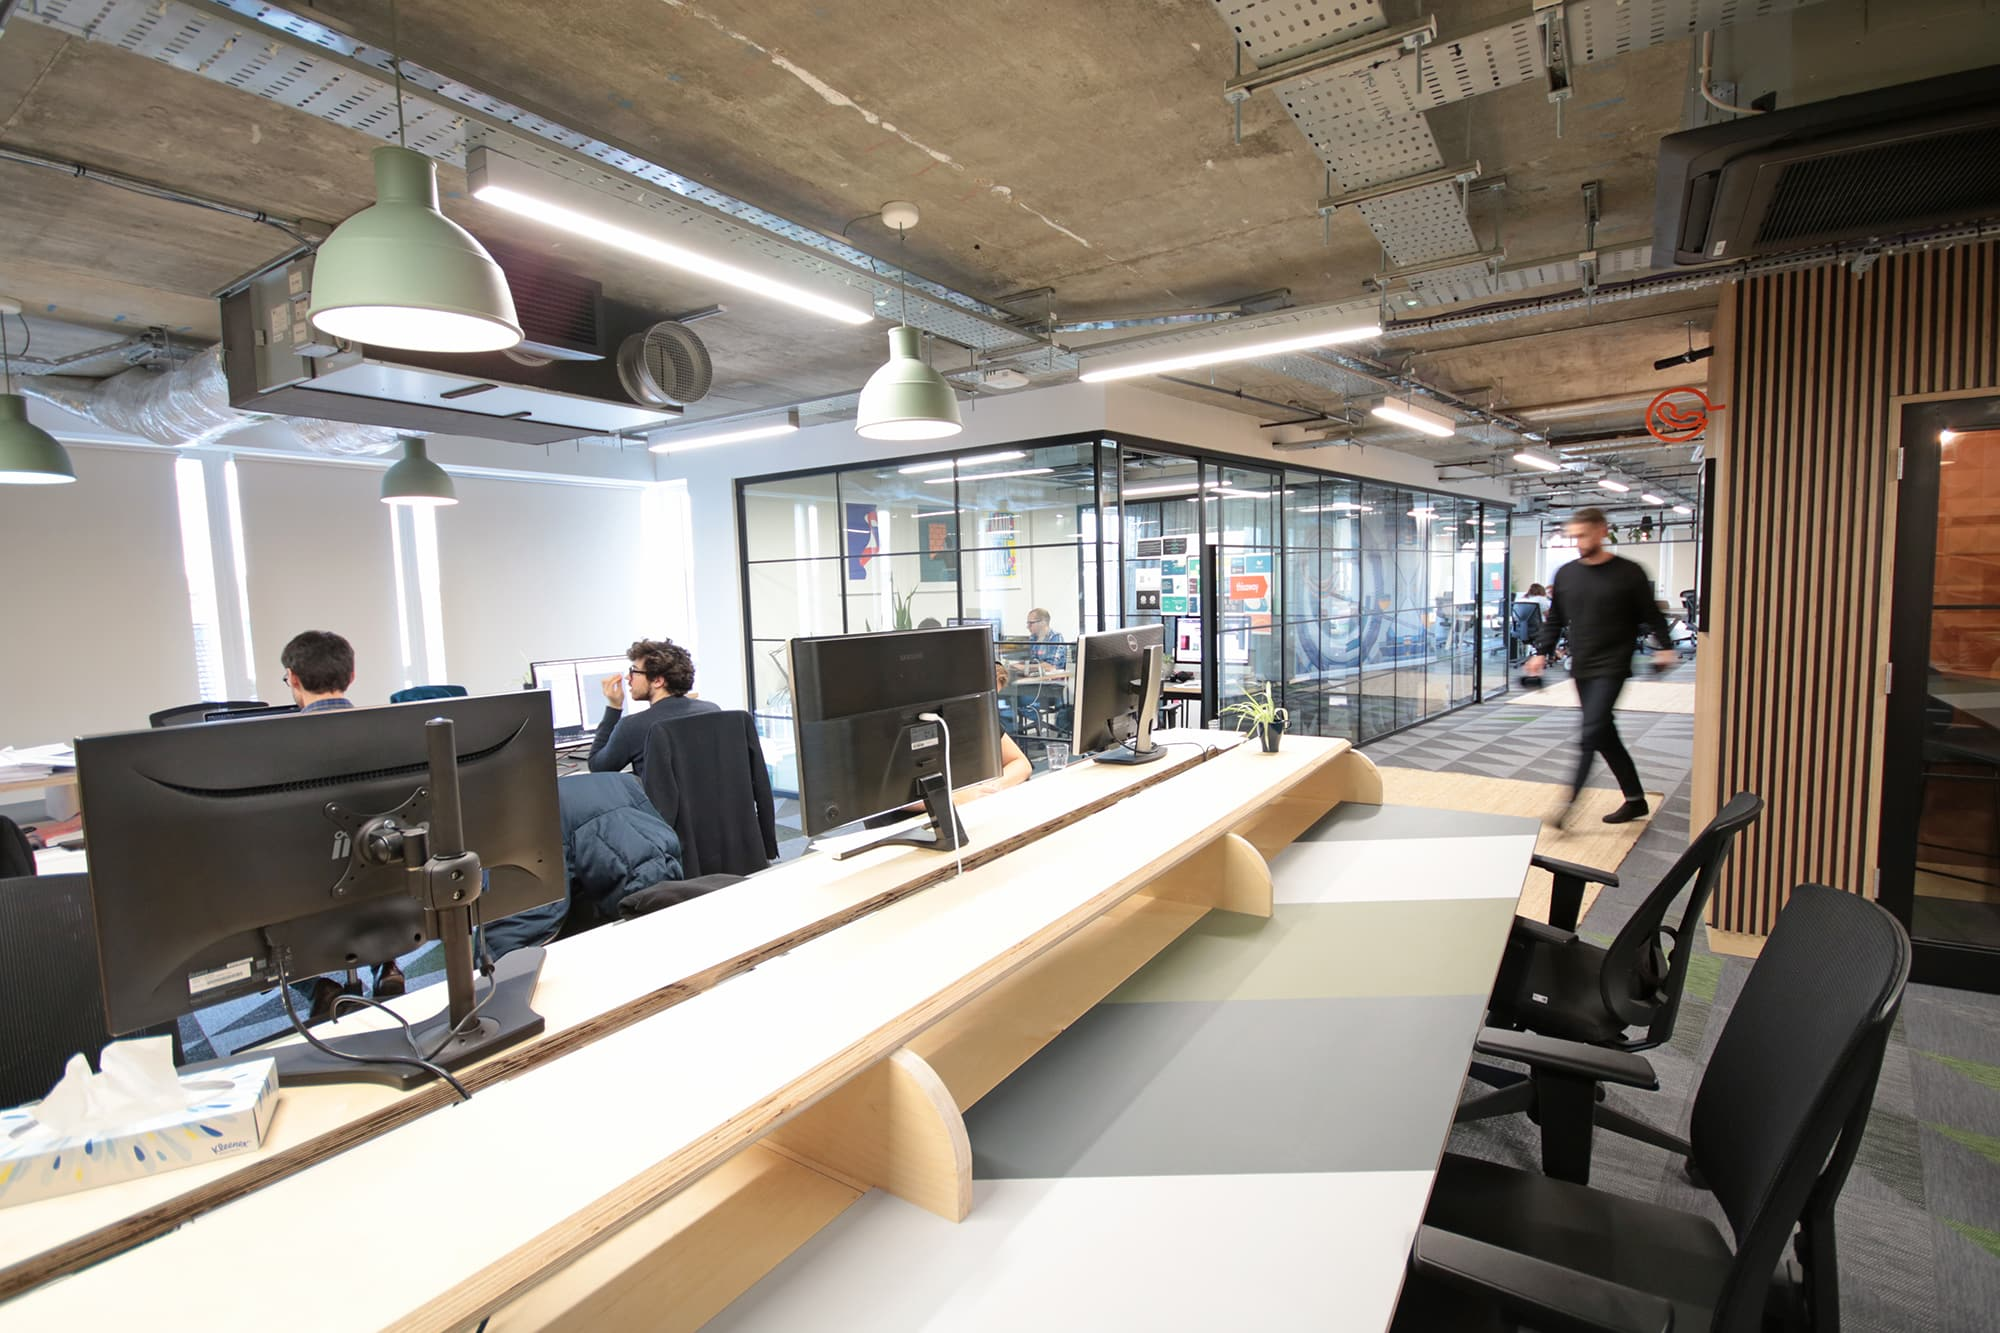 Coworking space with man walking